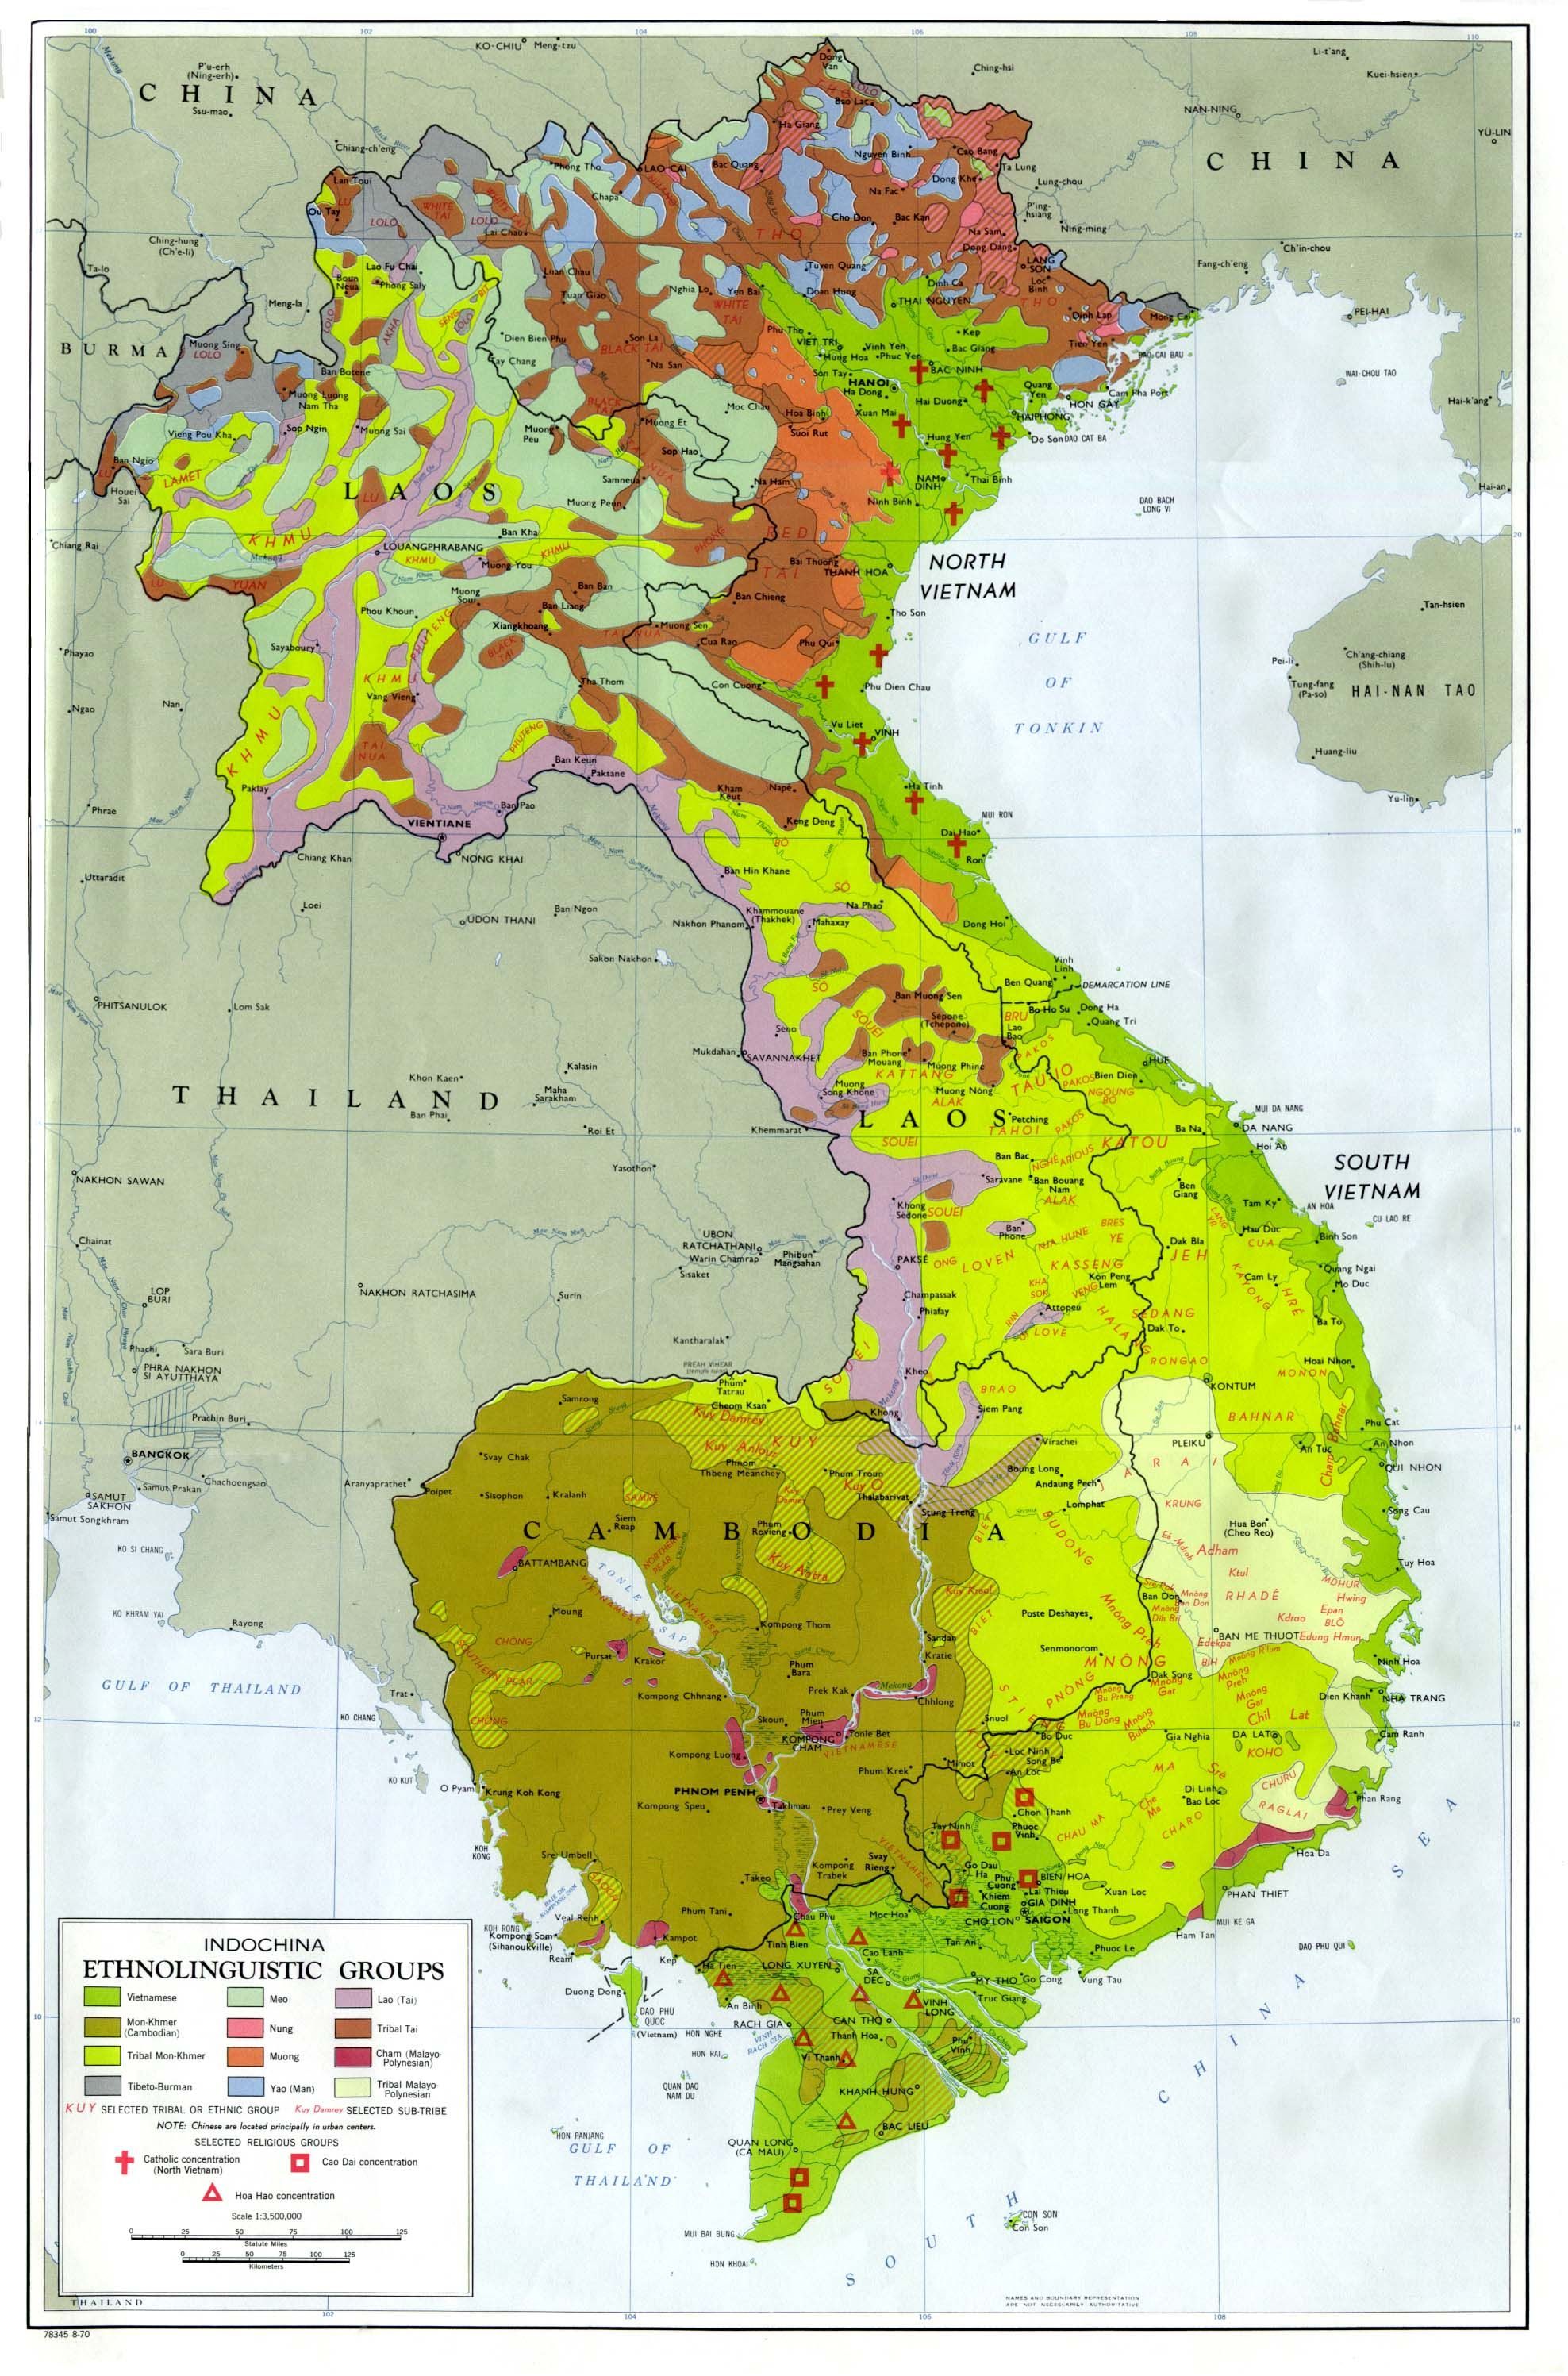 CLPP Language Map Page Vietnam War And Legacy Pinterest - World map in vietnamese language